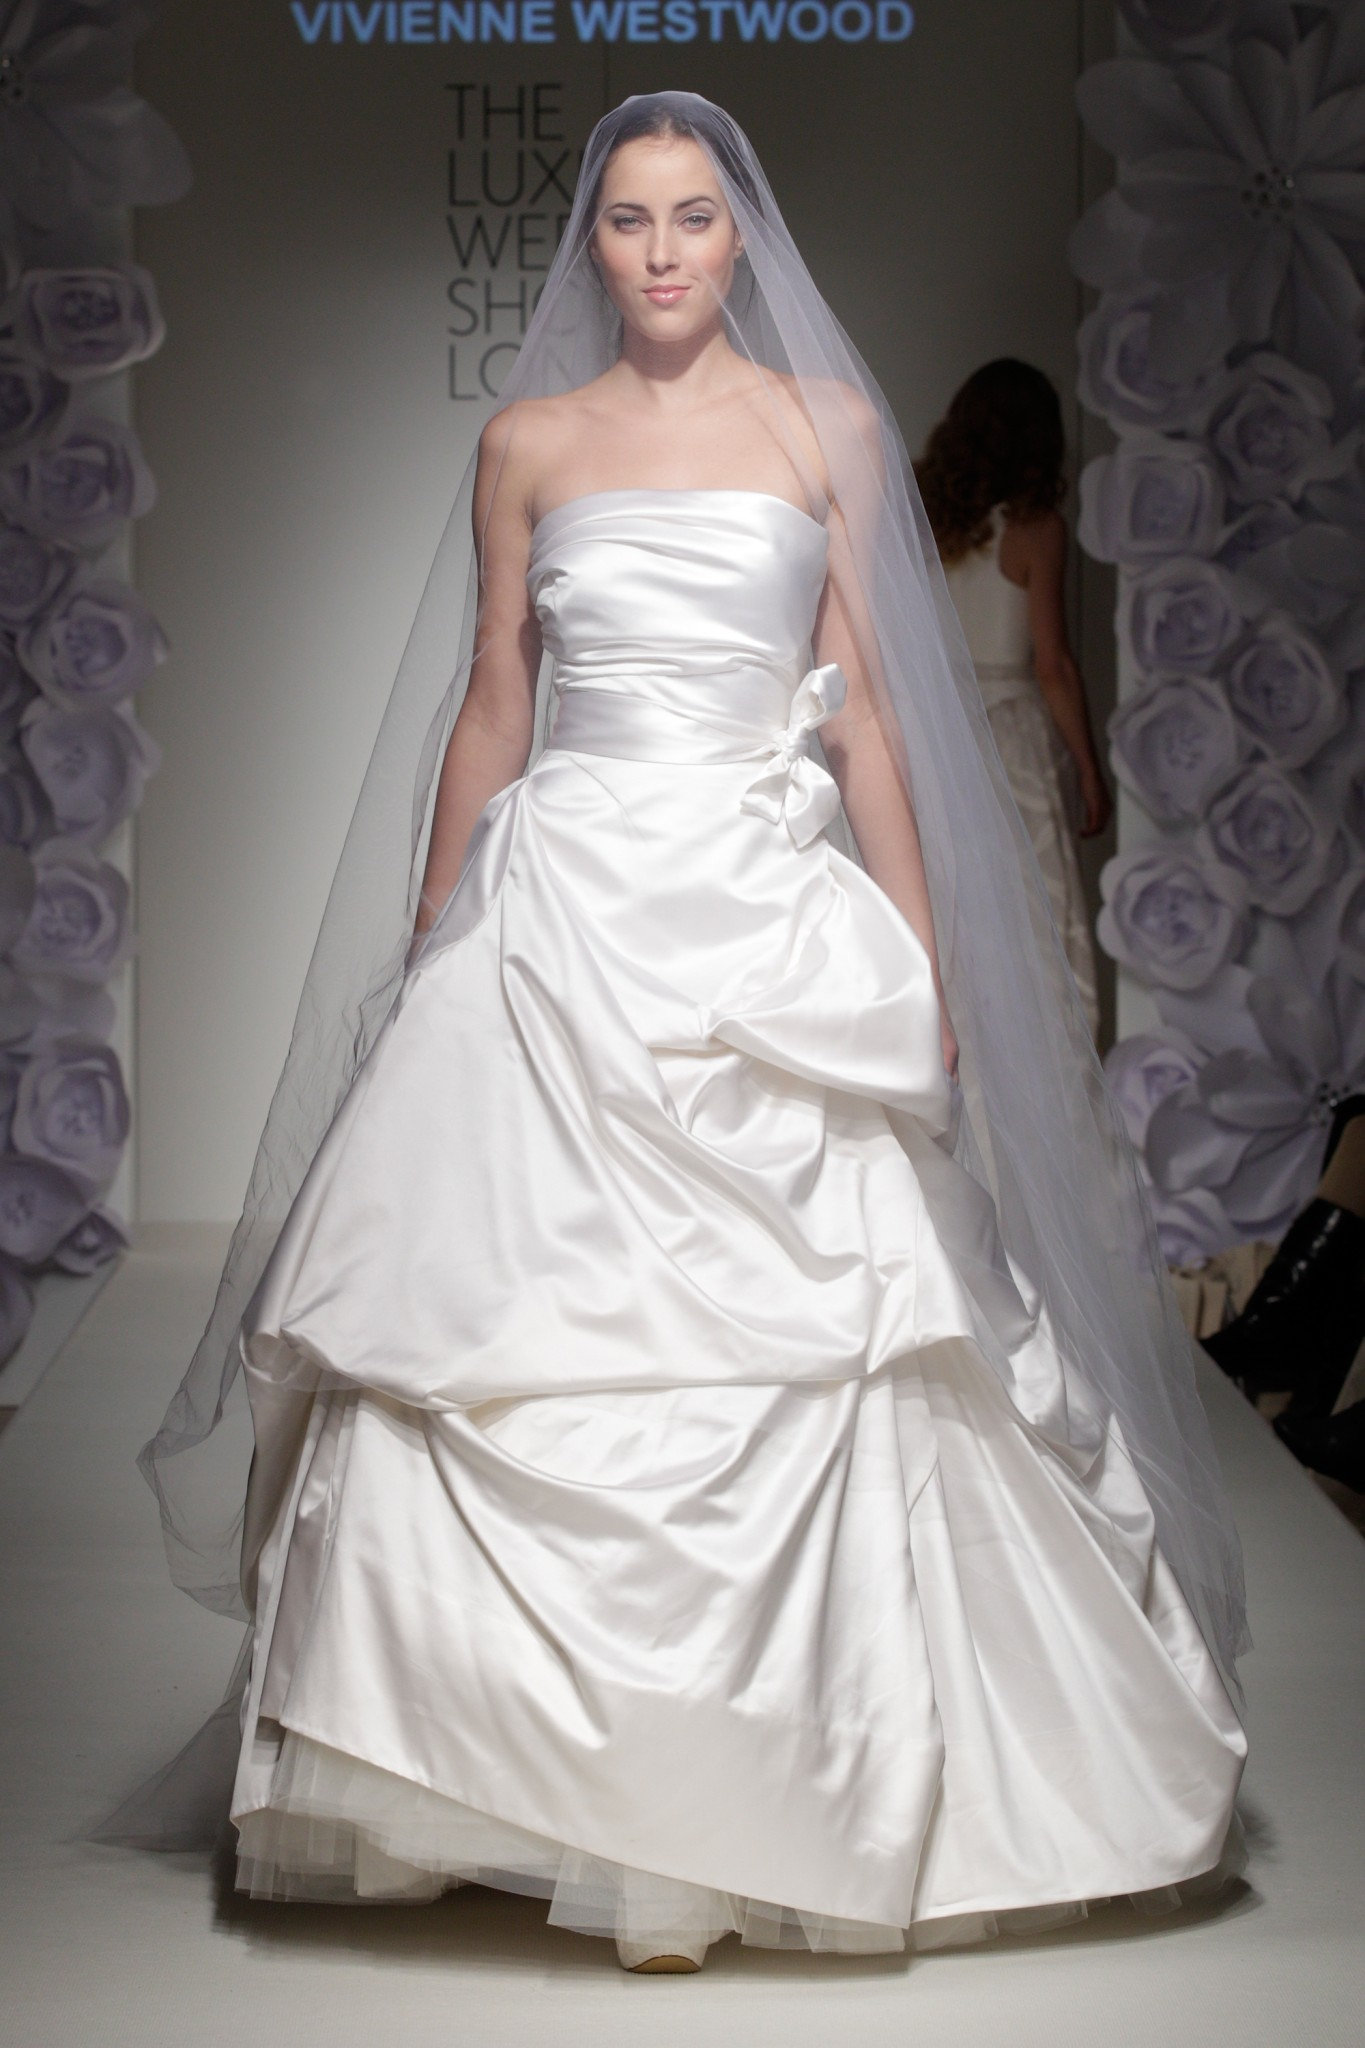 vivienne-westwood-bridal | The Wedding Dolls